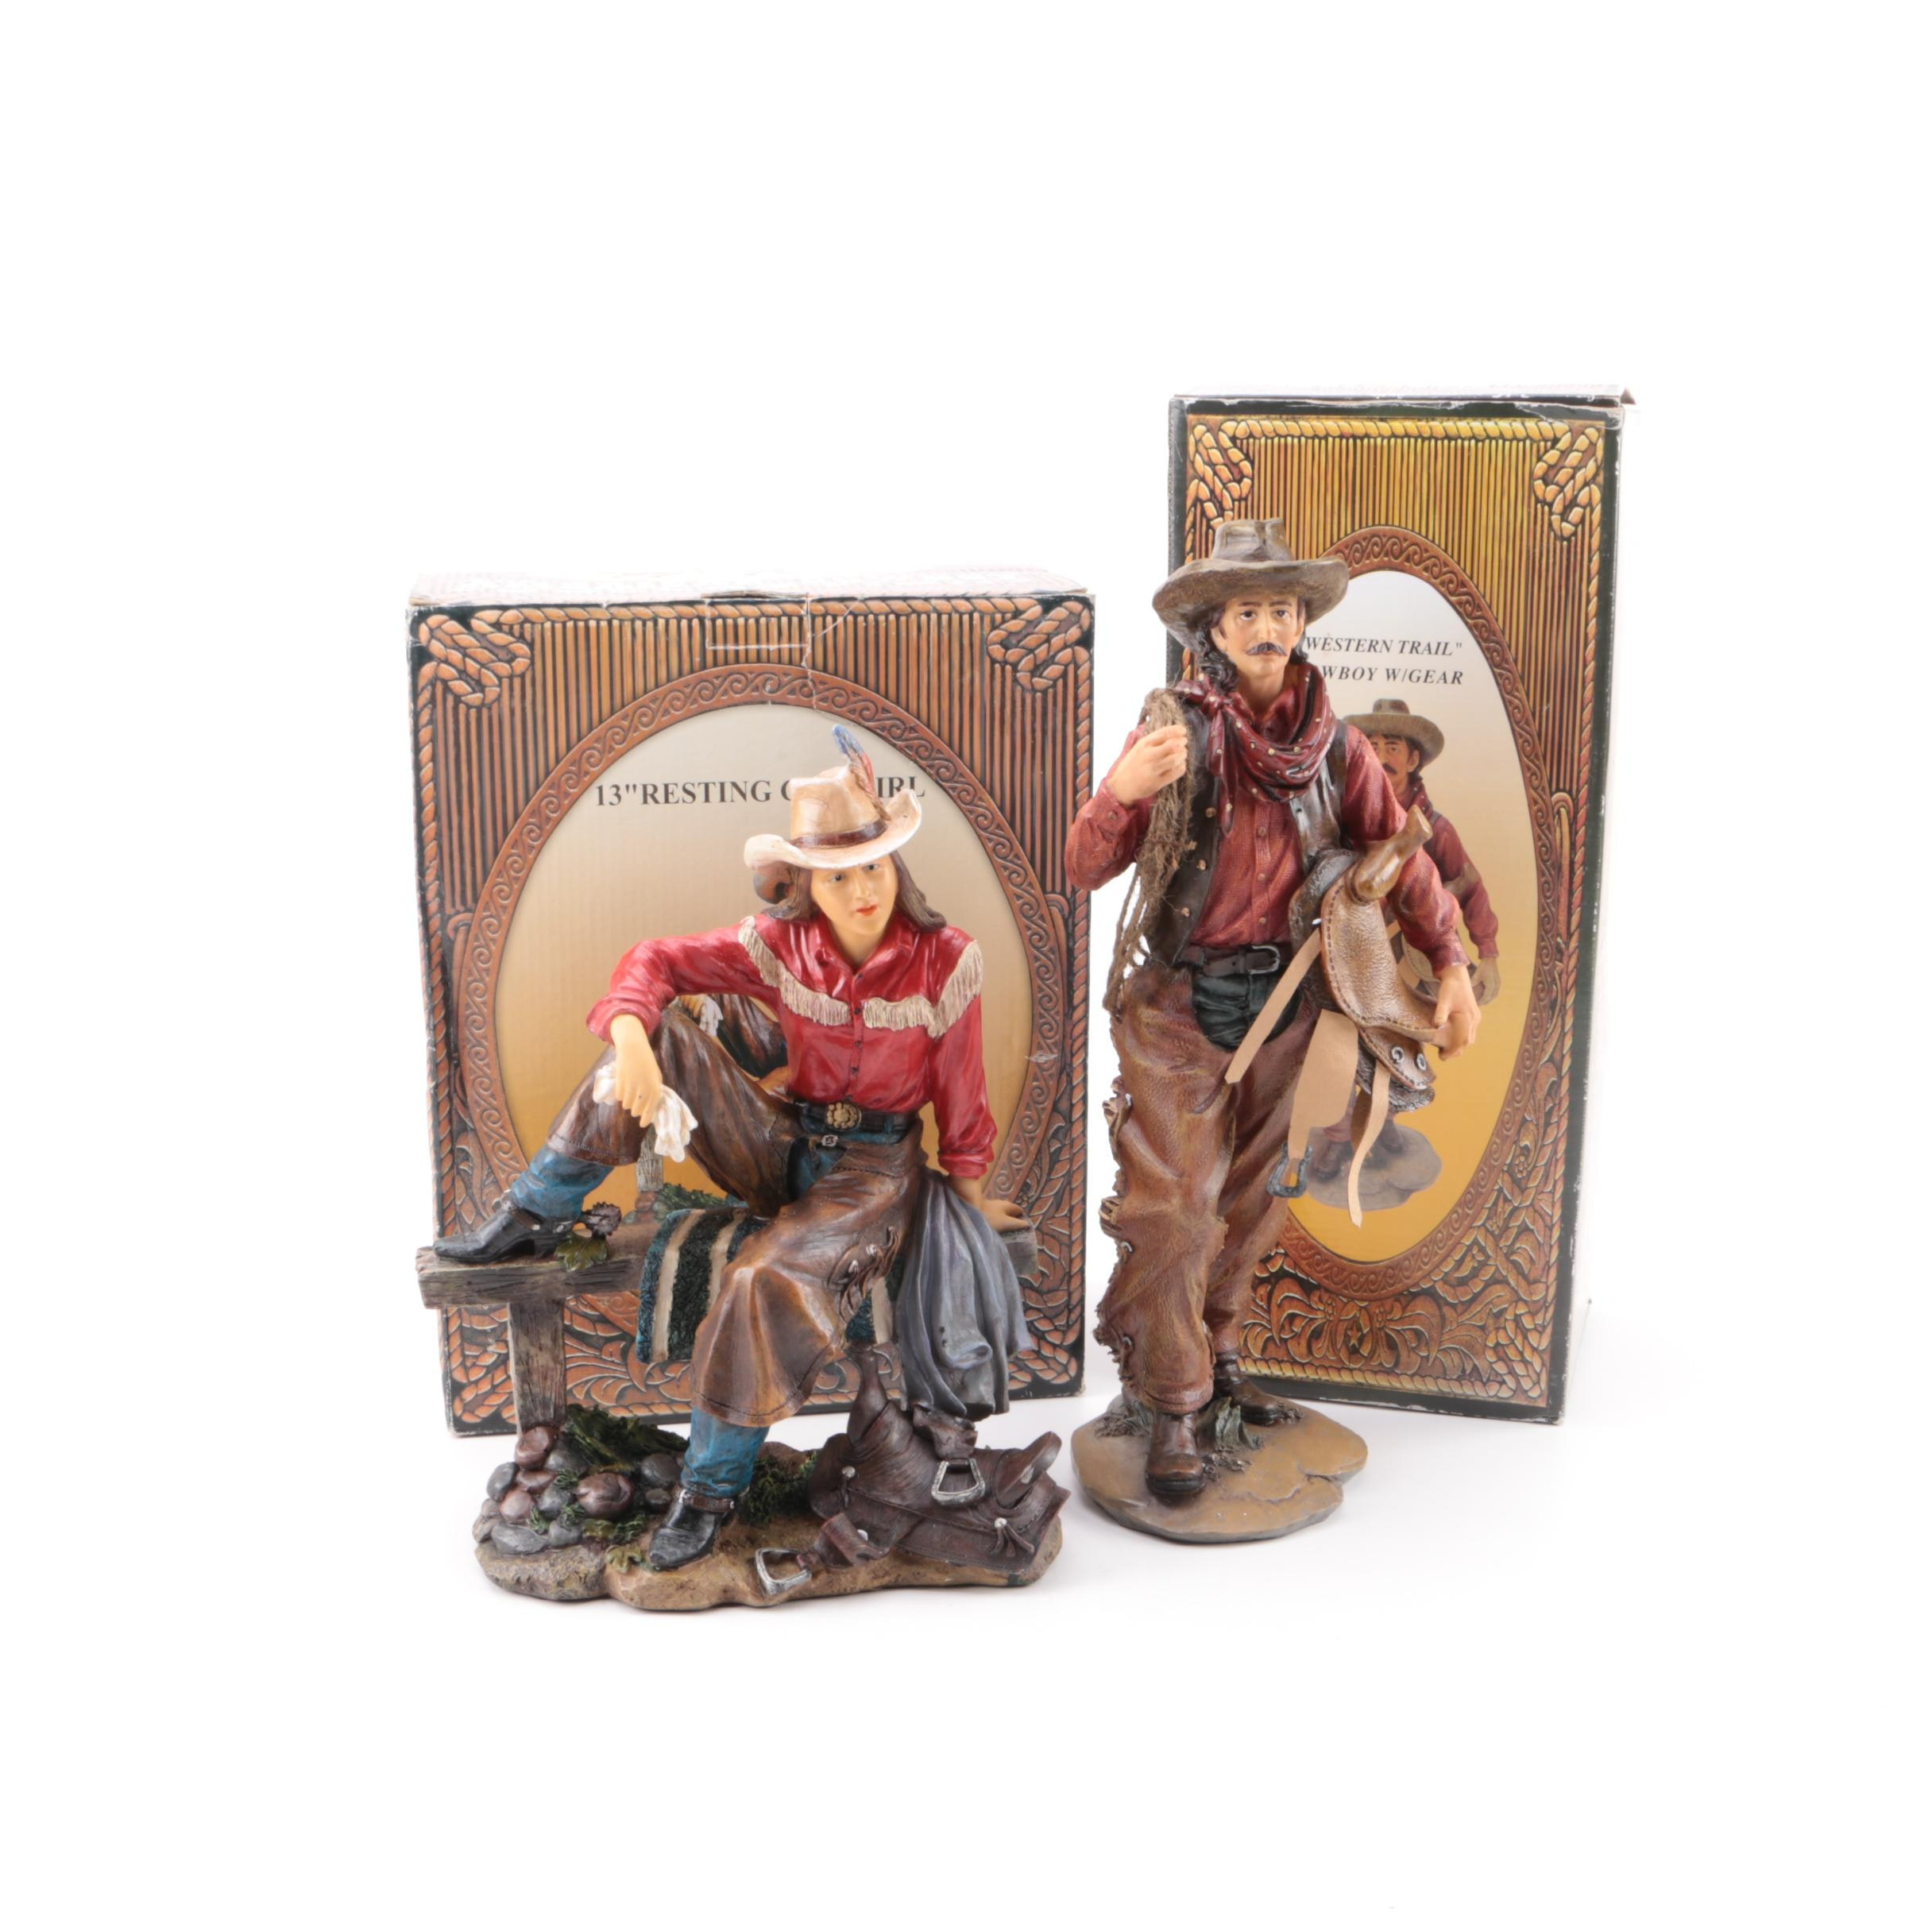 Resin Cowboy and Cowgirl Figurines